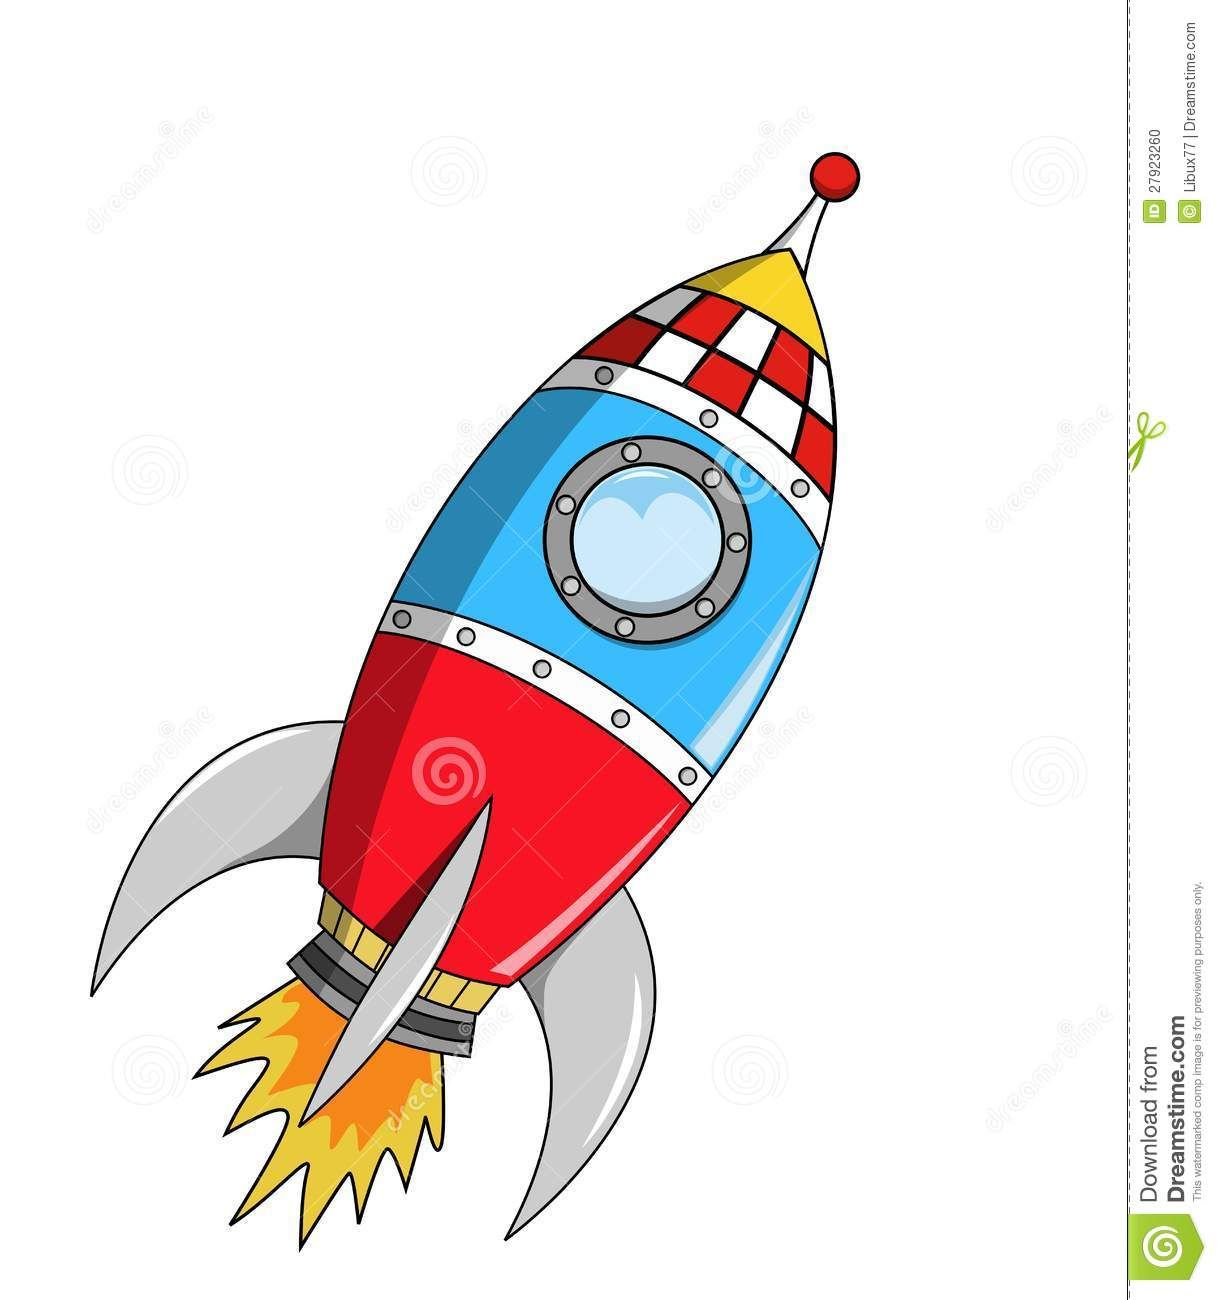 Cartoon Space Rocket Mission Download From Over 42 Million High